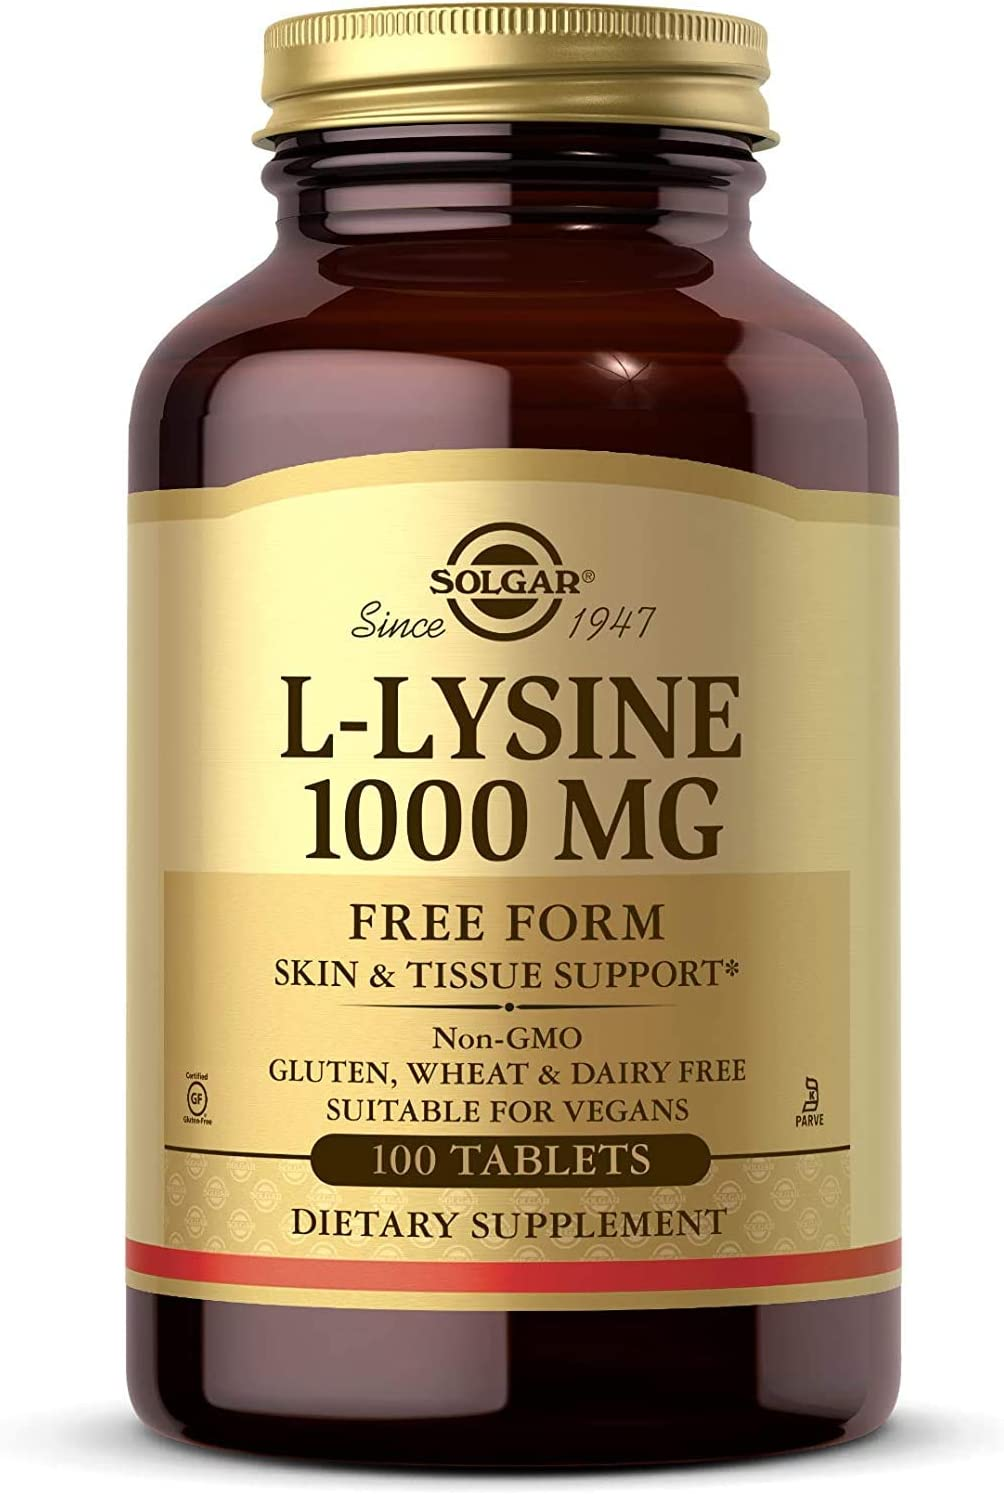 Solgar L-Lysine 1000 mg, 100 Tablets: Health & Personal Care